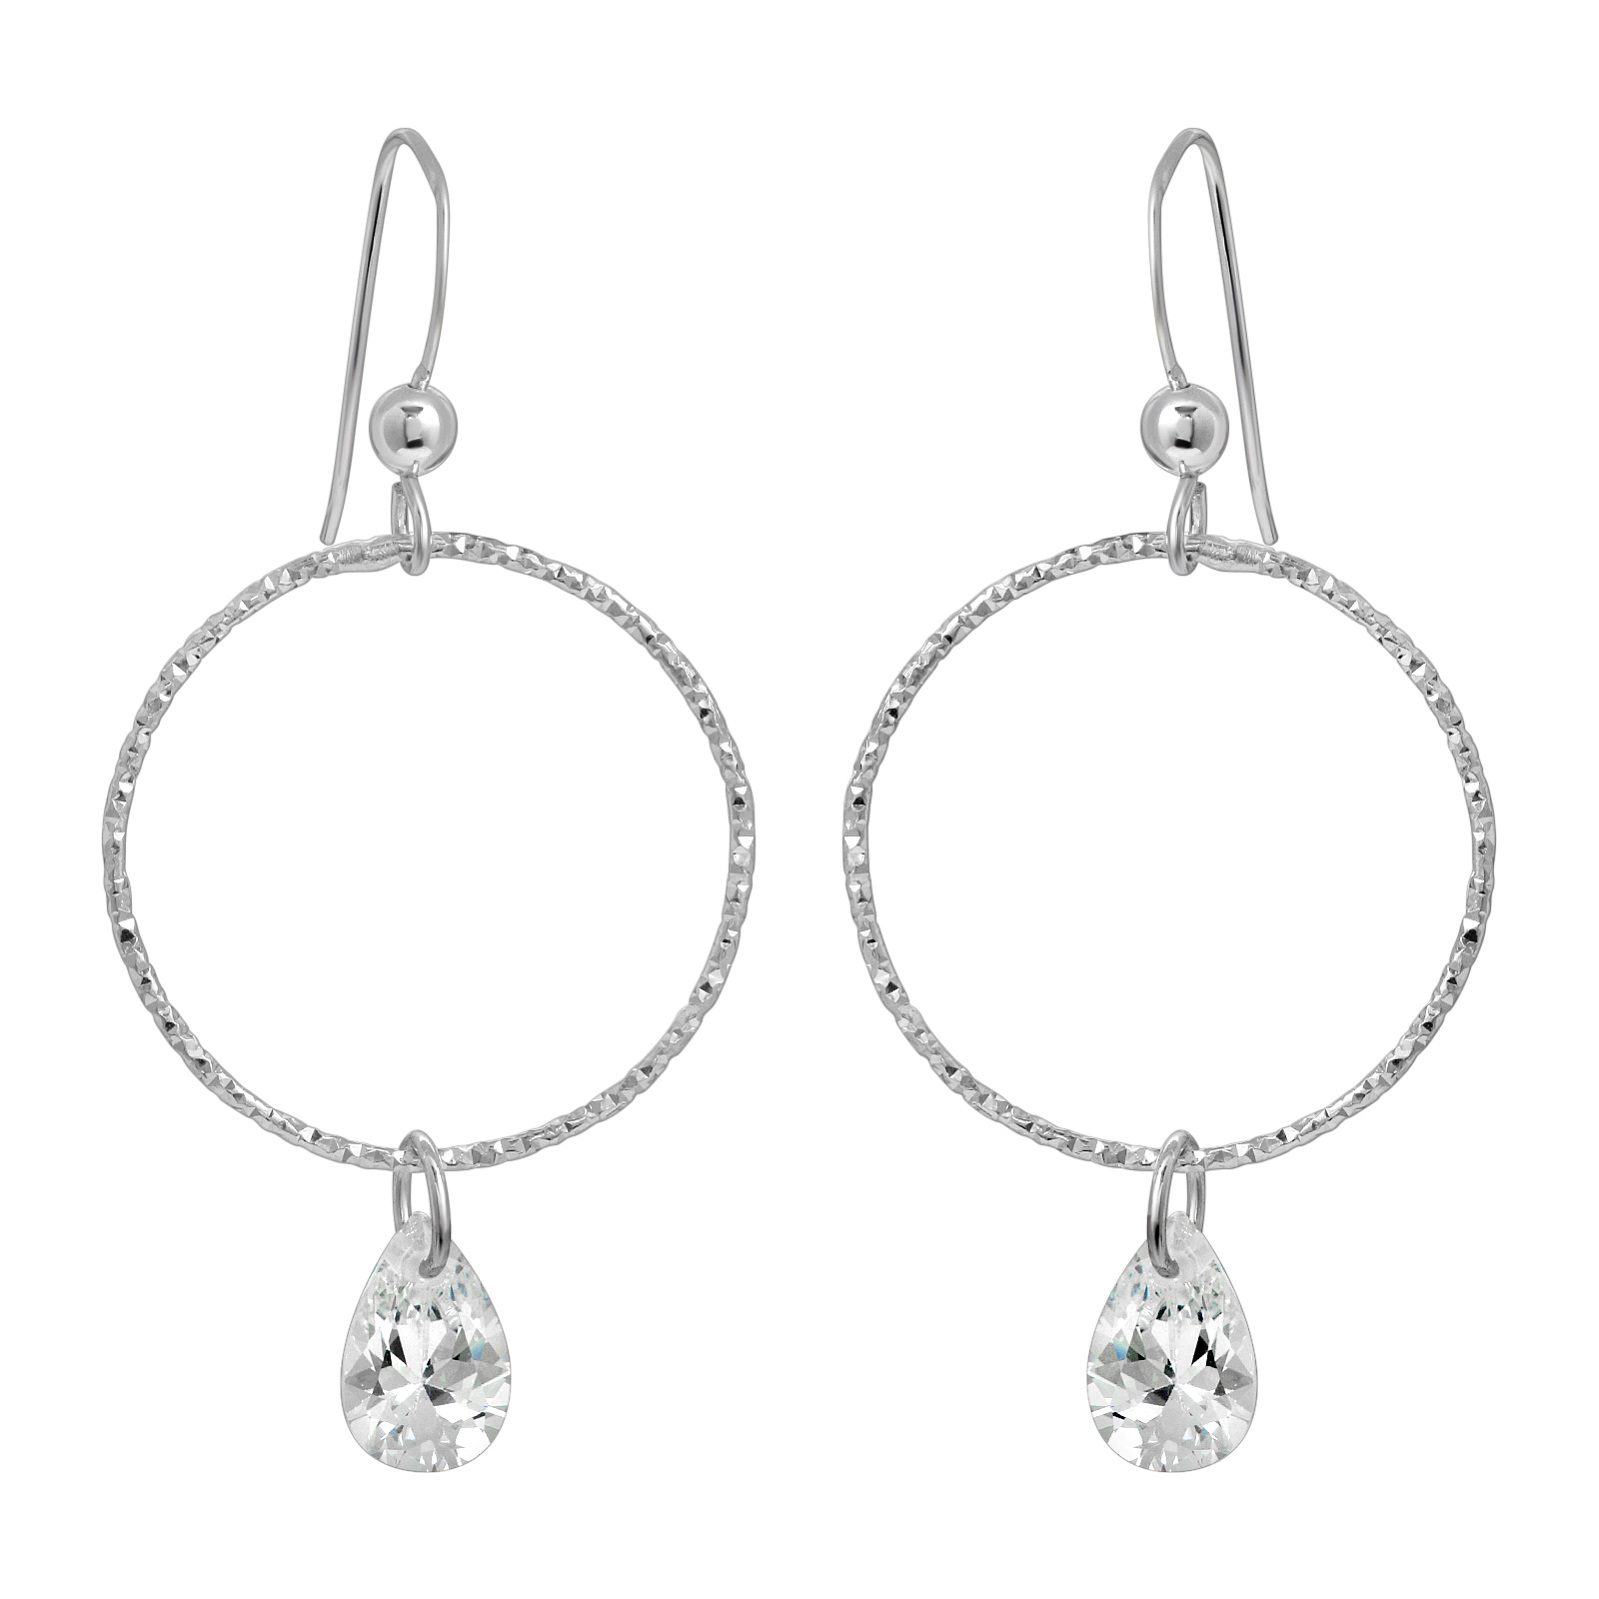 CZ Diamond Cut Hoops Earrings - Clear CZ